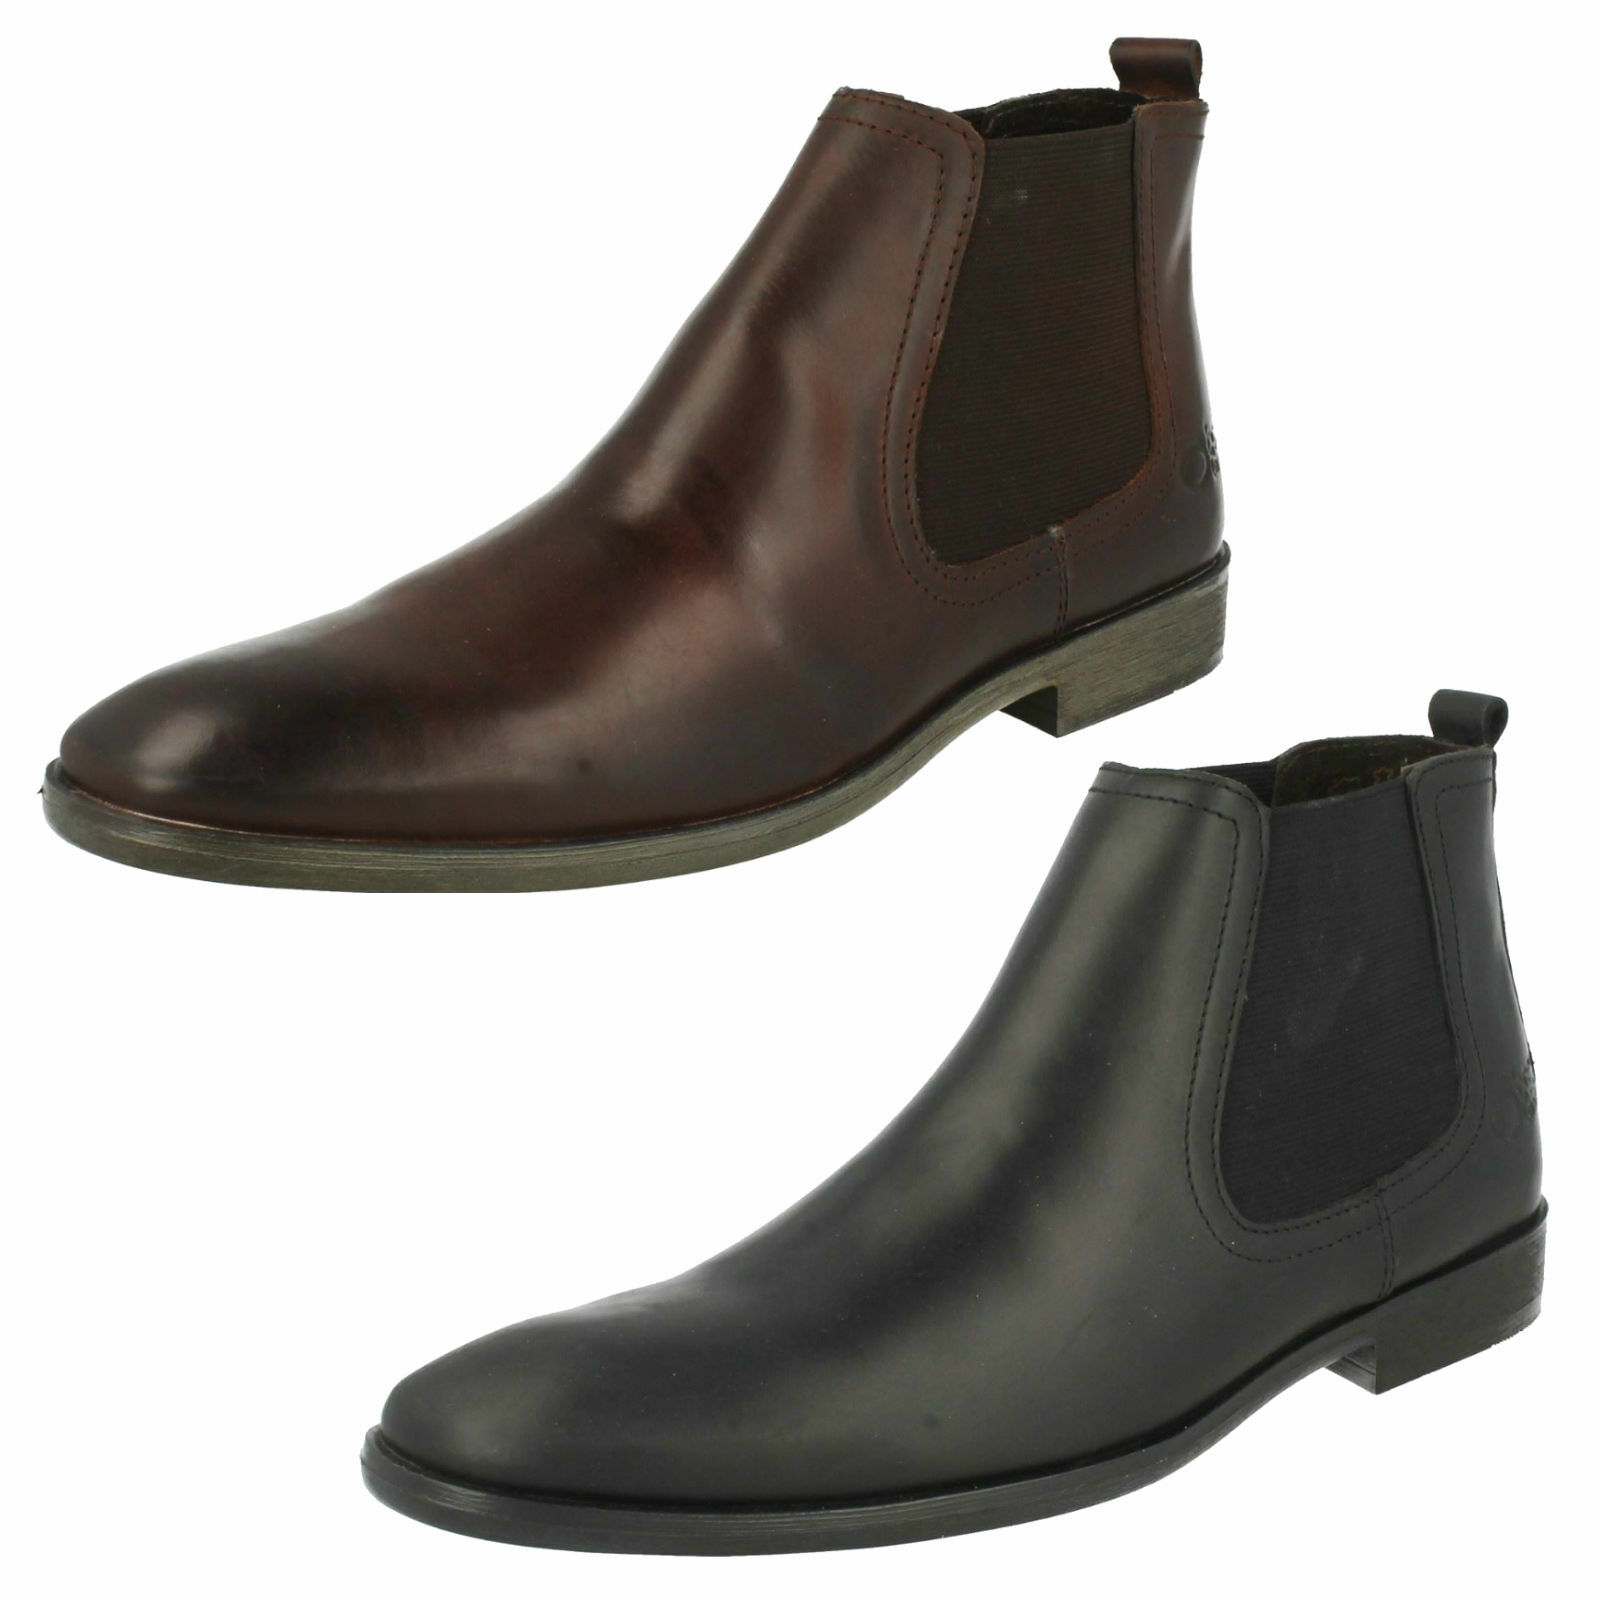 Da Uomo ZAFFERANO cerosa Nero/cerosa London Brown BOOTS by Base London Nero/cerosa .00 23f619